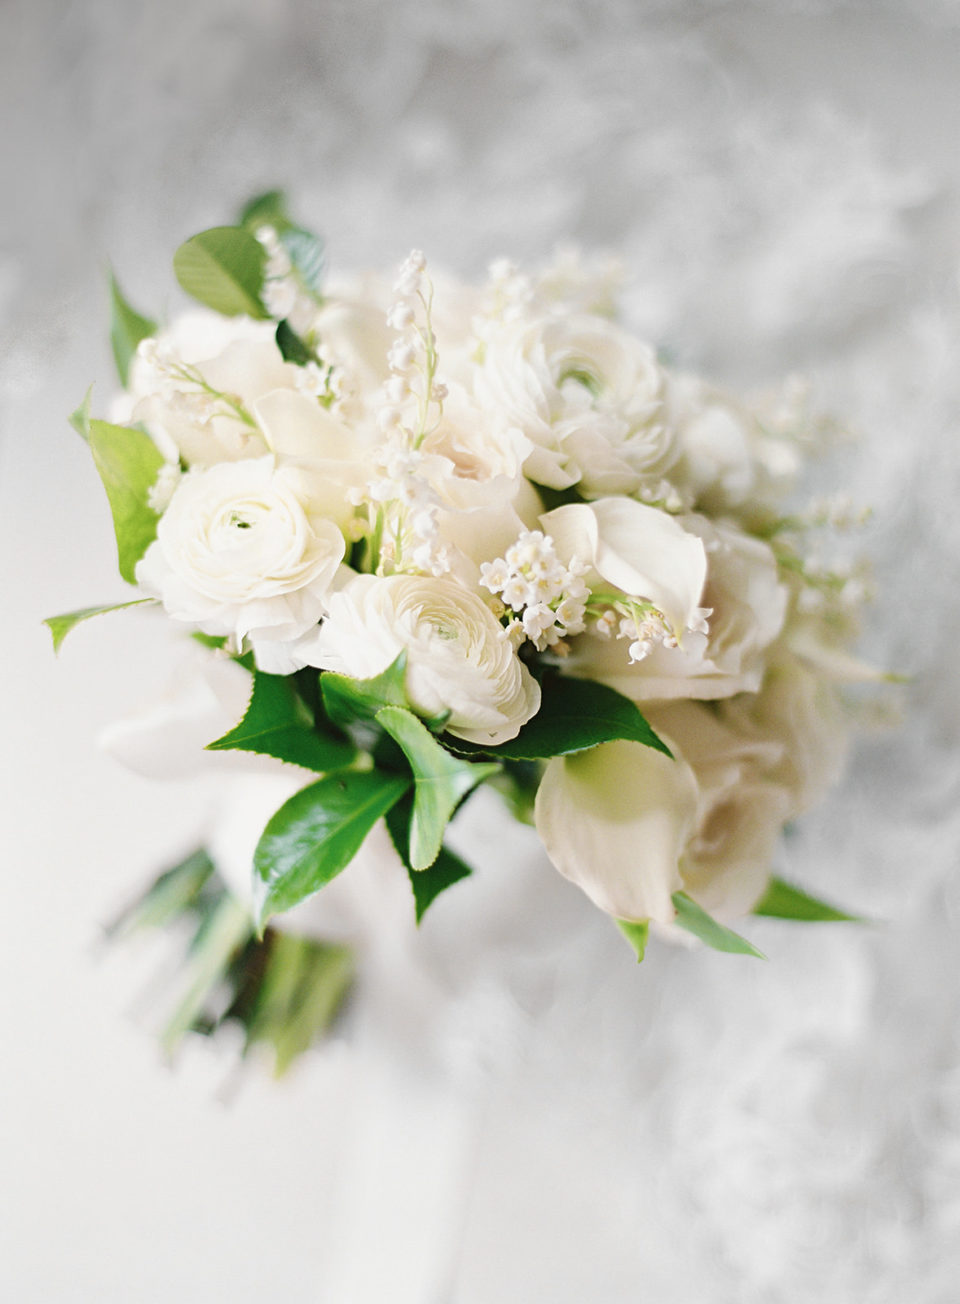 soft white florals delicate bridal bouquet